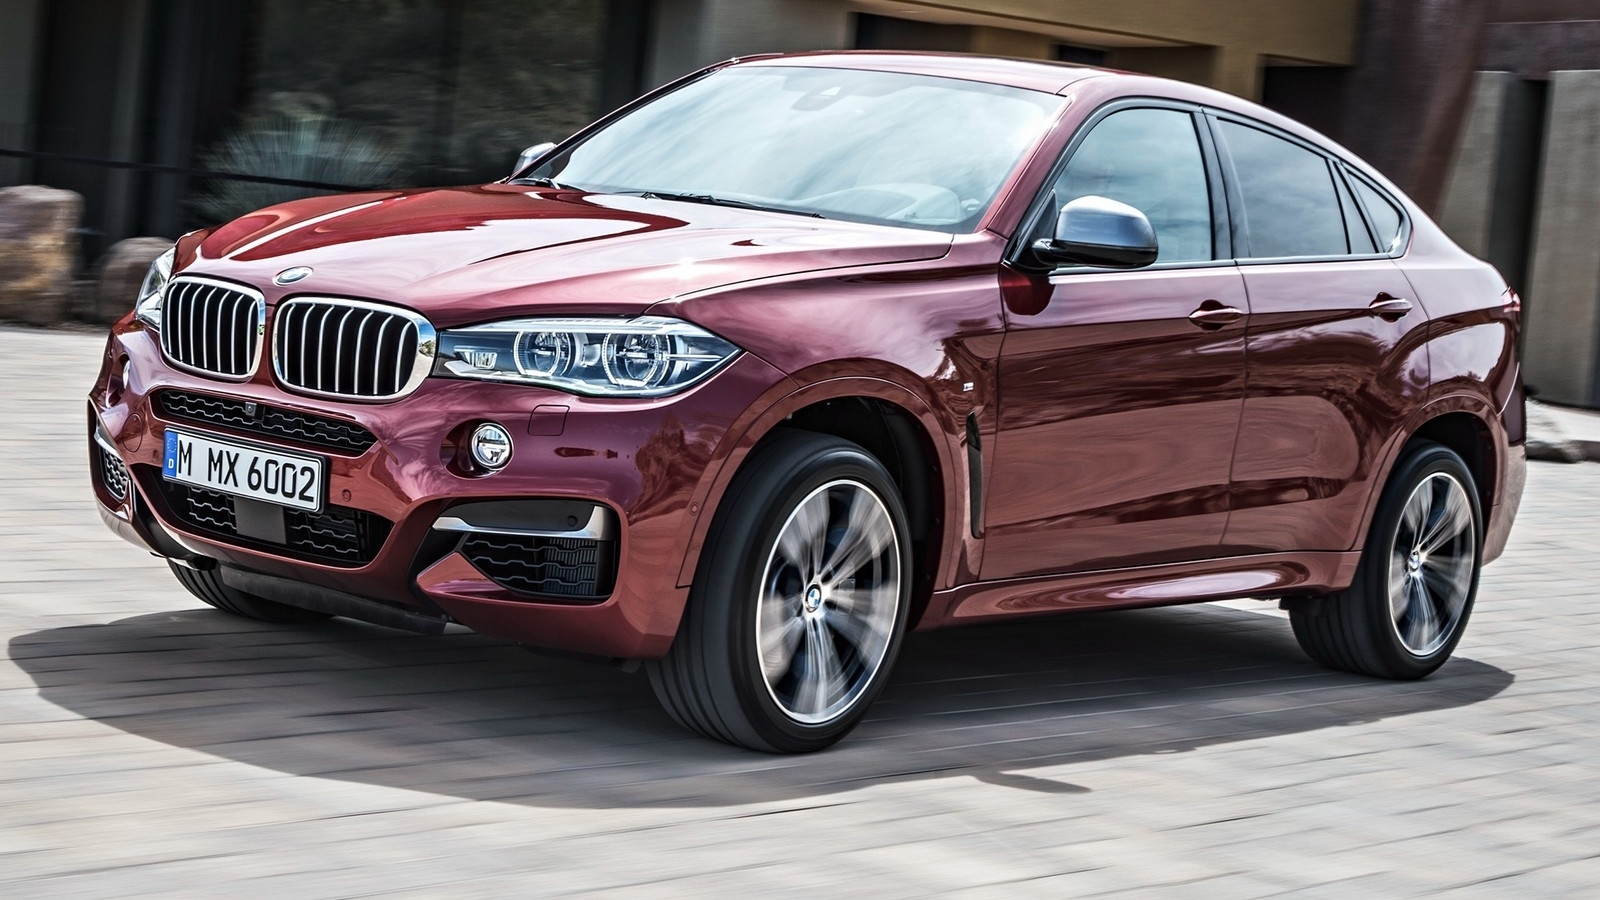 Bmw X6 S Fotogallery G Power Bmw X6 M Typhoon S